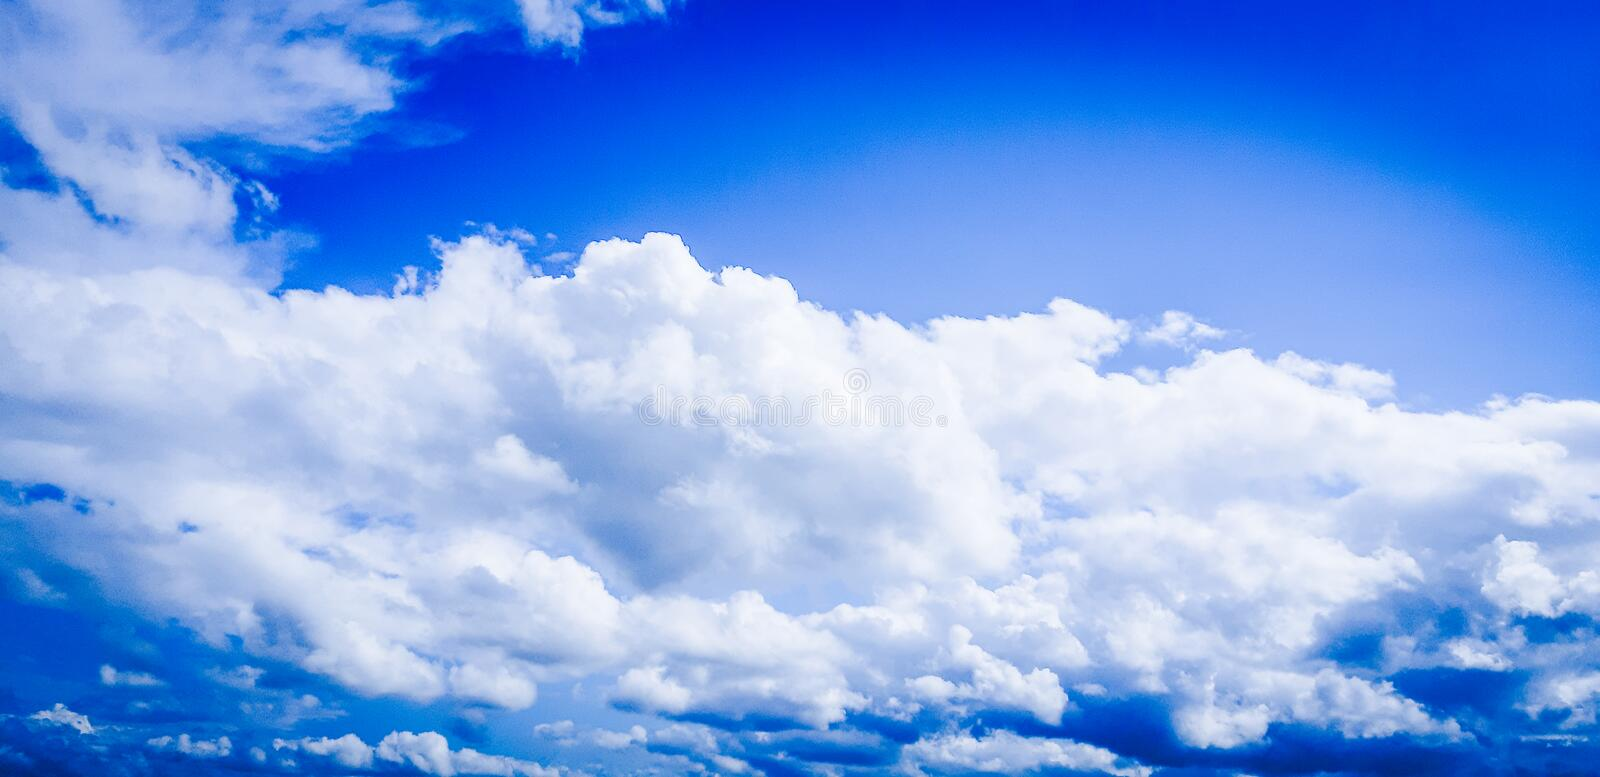 Very  beautiful, magic sky with clouds! stock photography